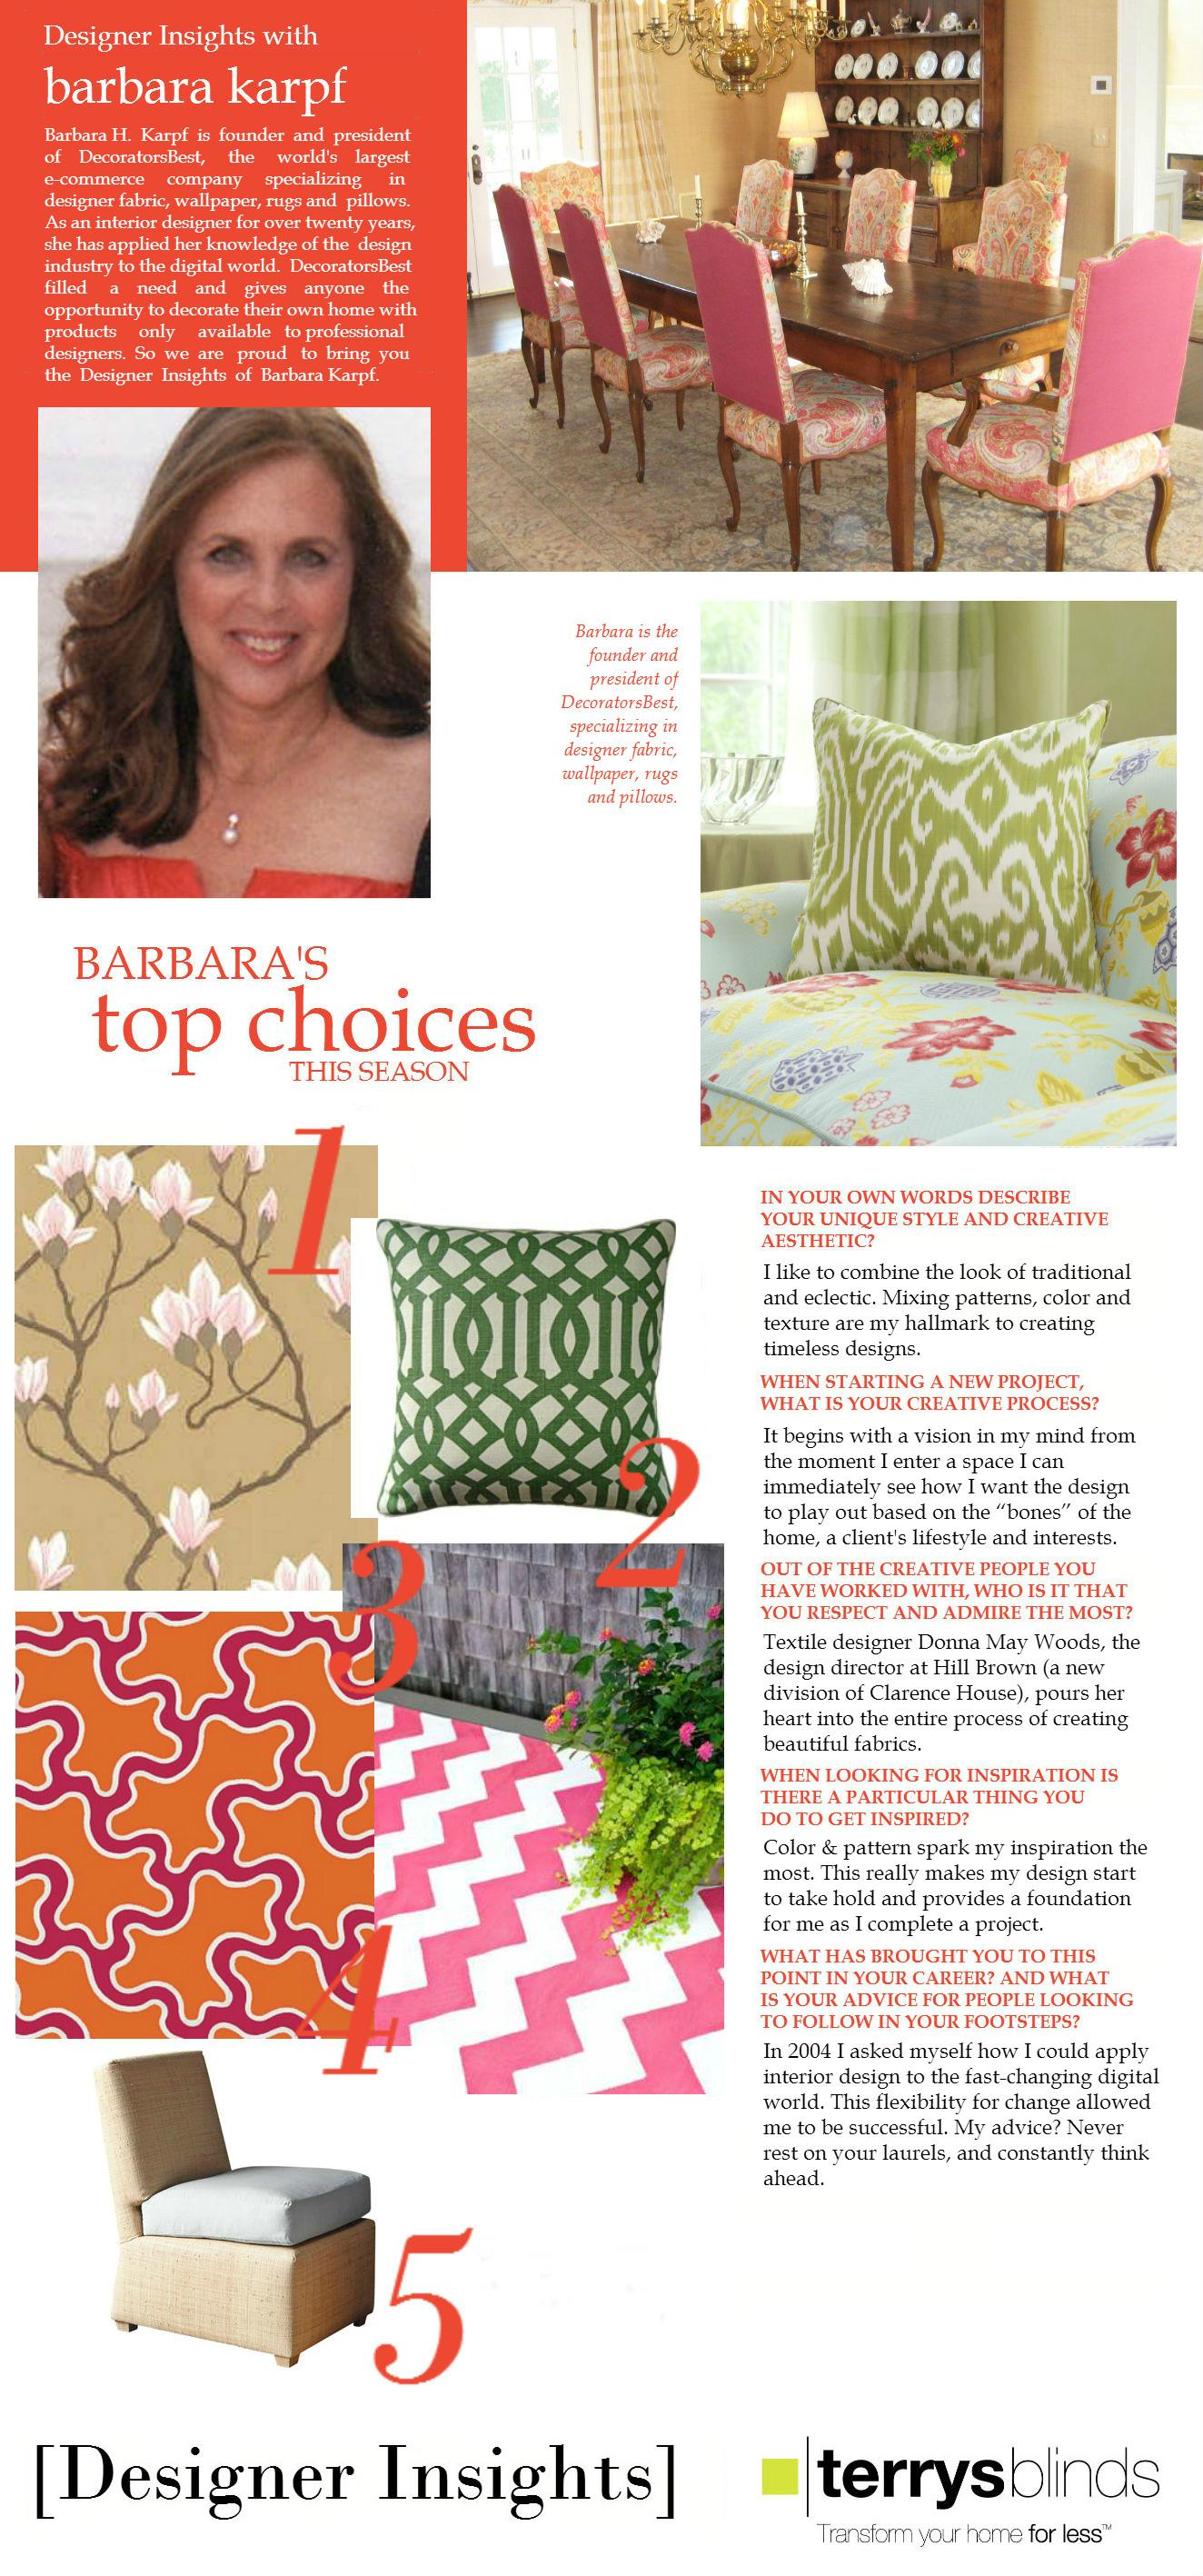 Designer Insights - Barbara Karpf